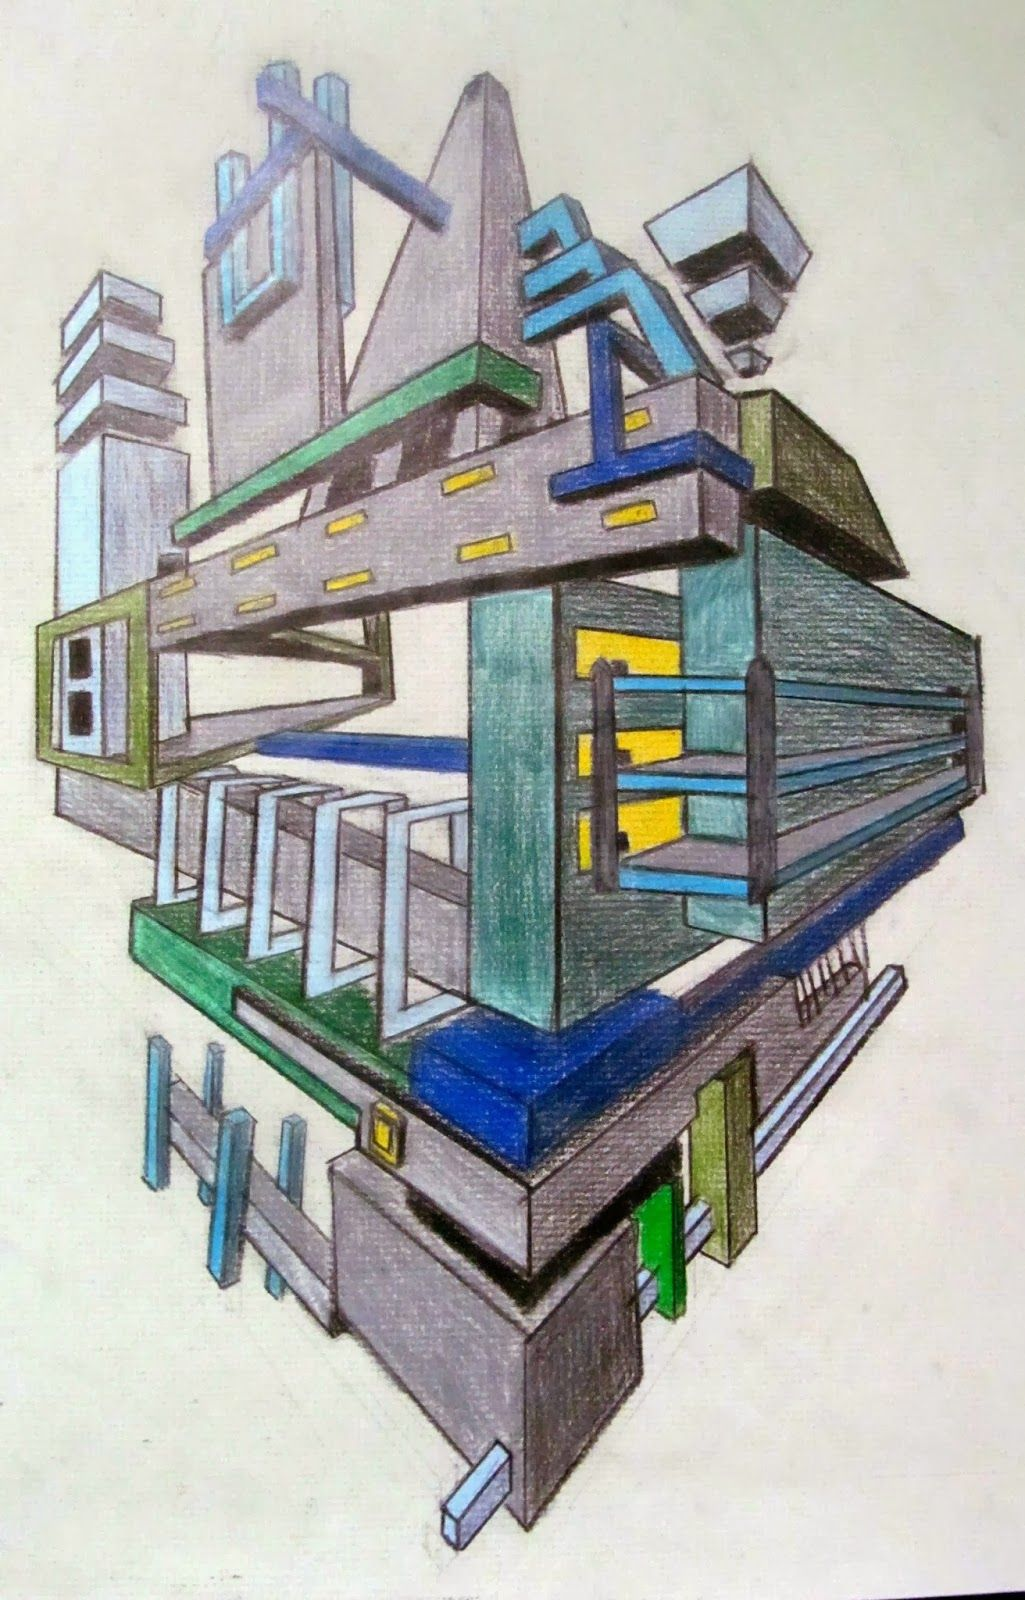 Ms Eaton S Phileonia Artonian Space Museums 2 3 Point Perspective Drawings Art